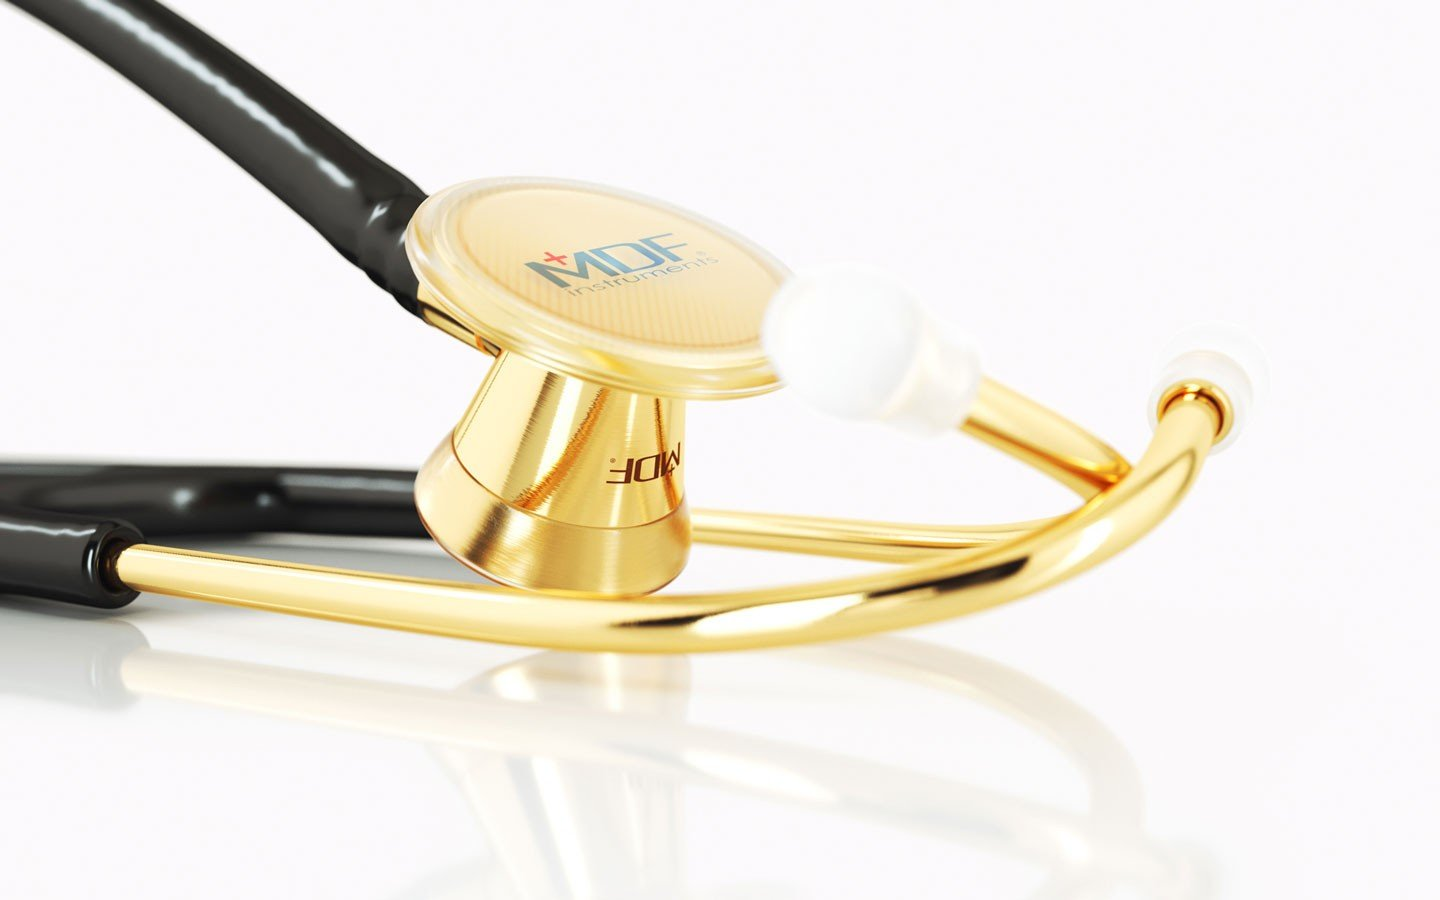 Cardiology stethoscope Premium auscultation High quality cardiology stethoscope Metal Finish